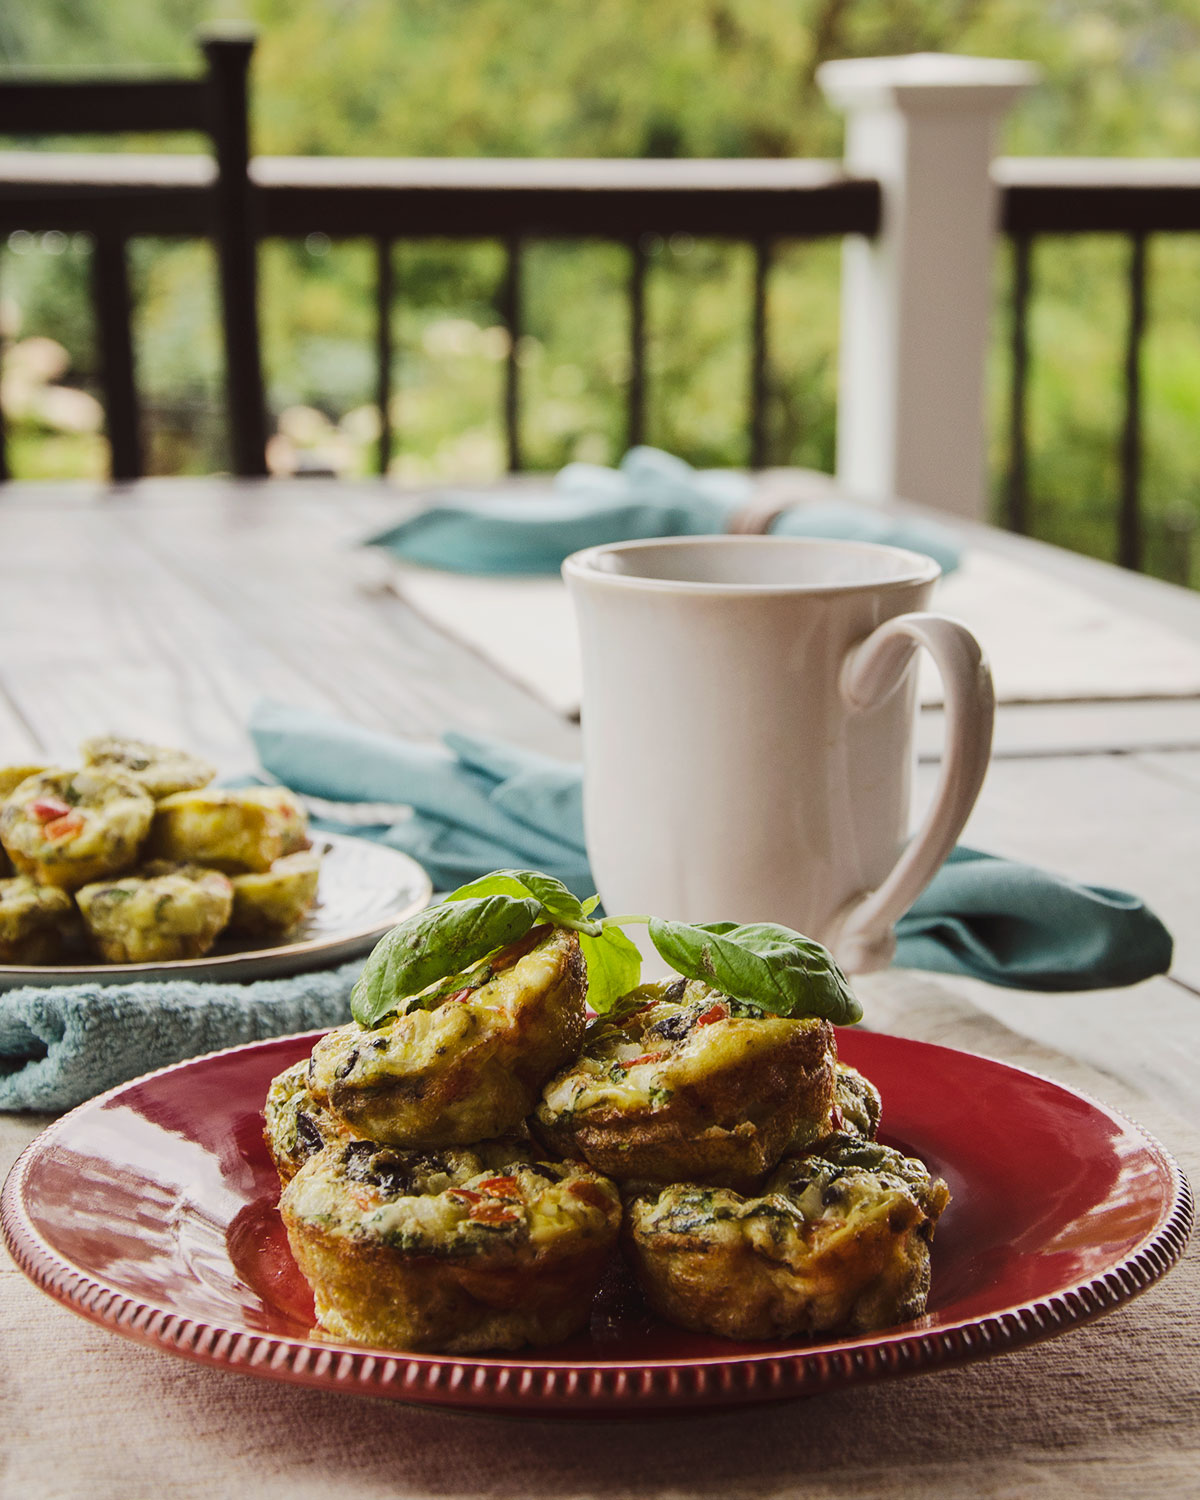 A warm and fragrant aroma surrounds this plate of Mediterranean Scrambled Egg Muffins.